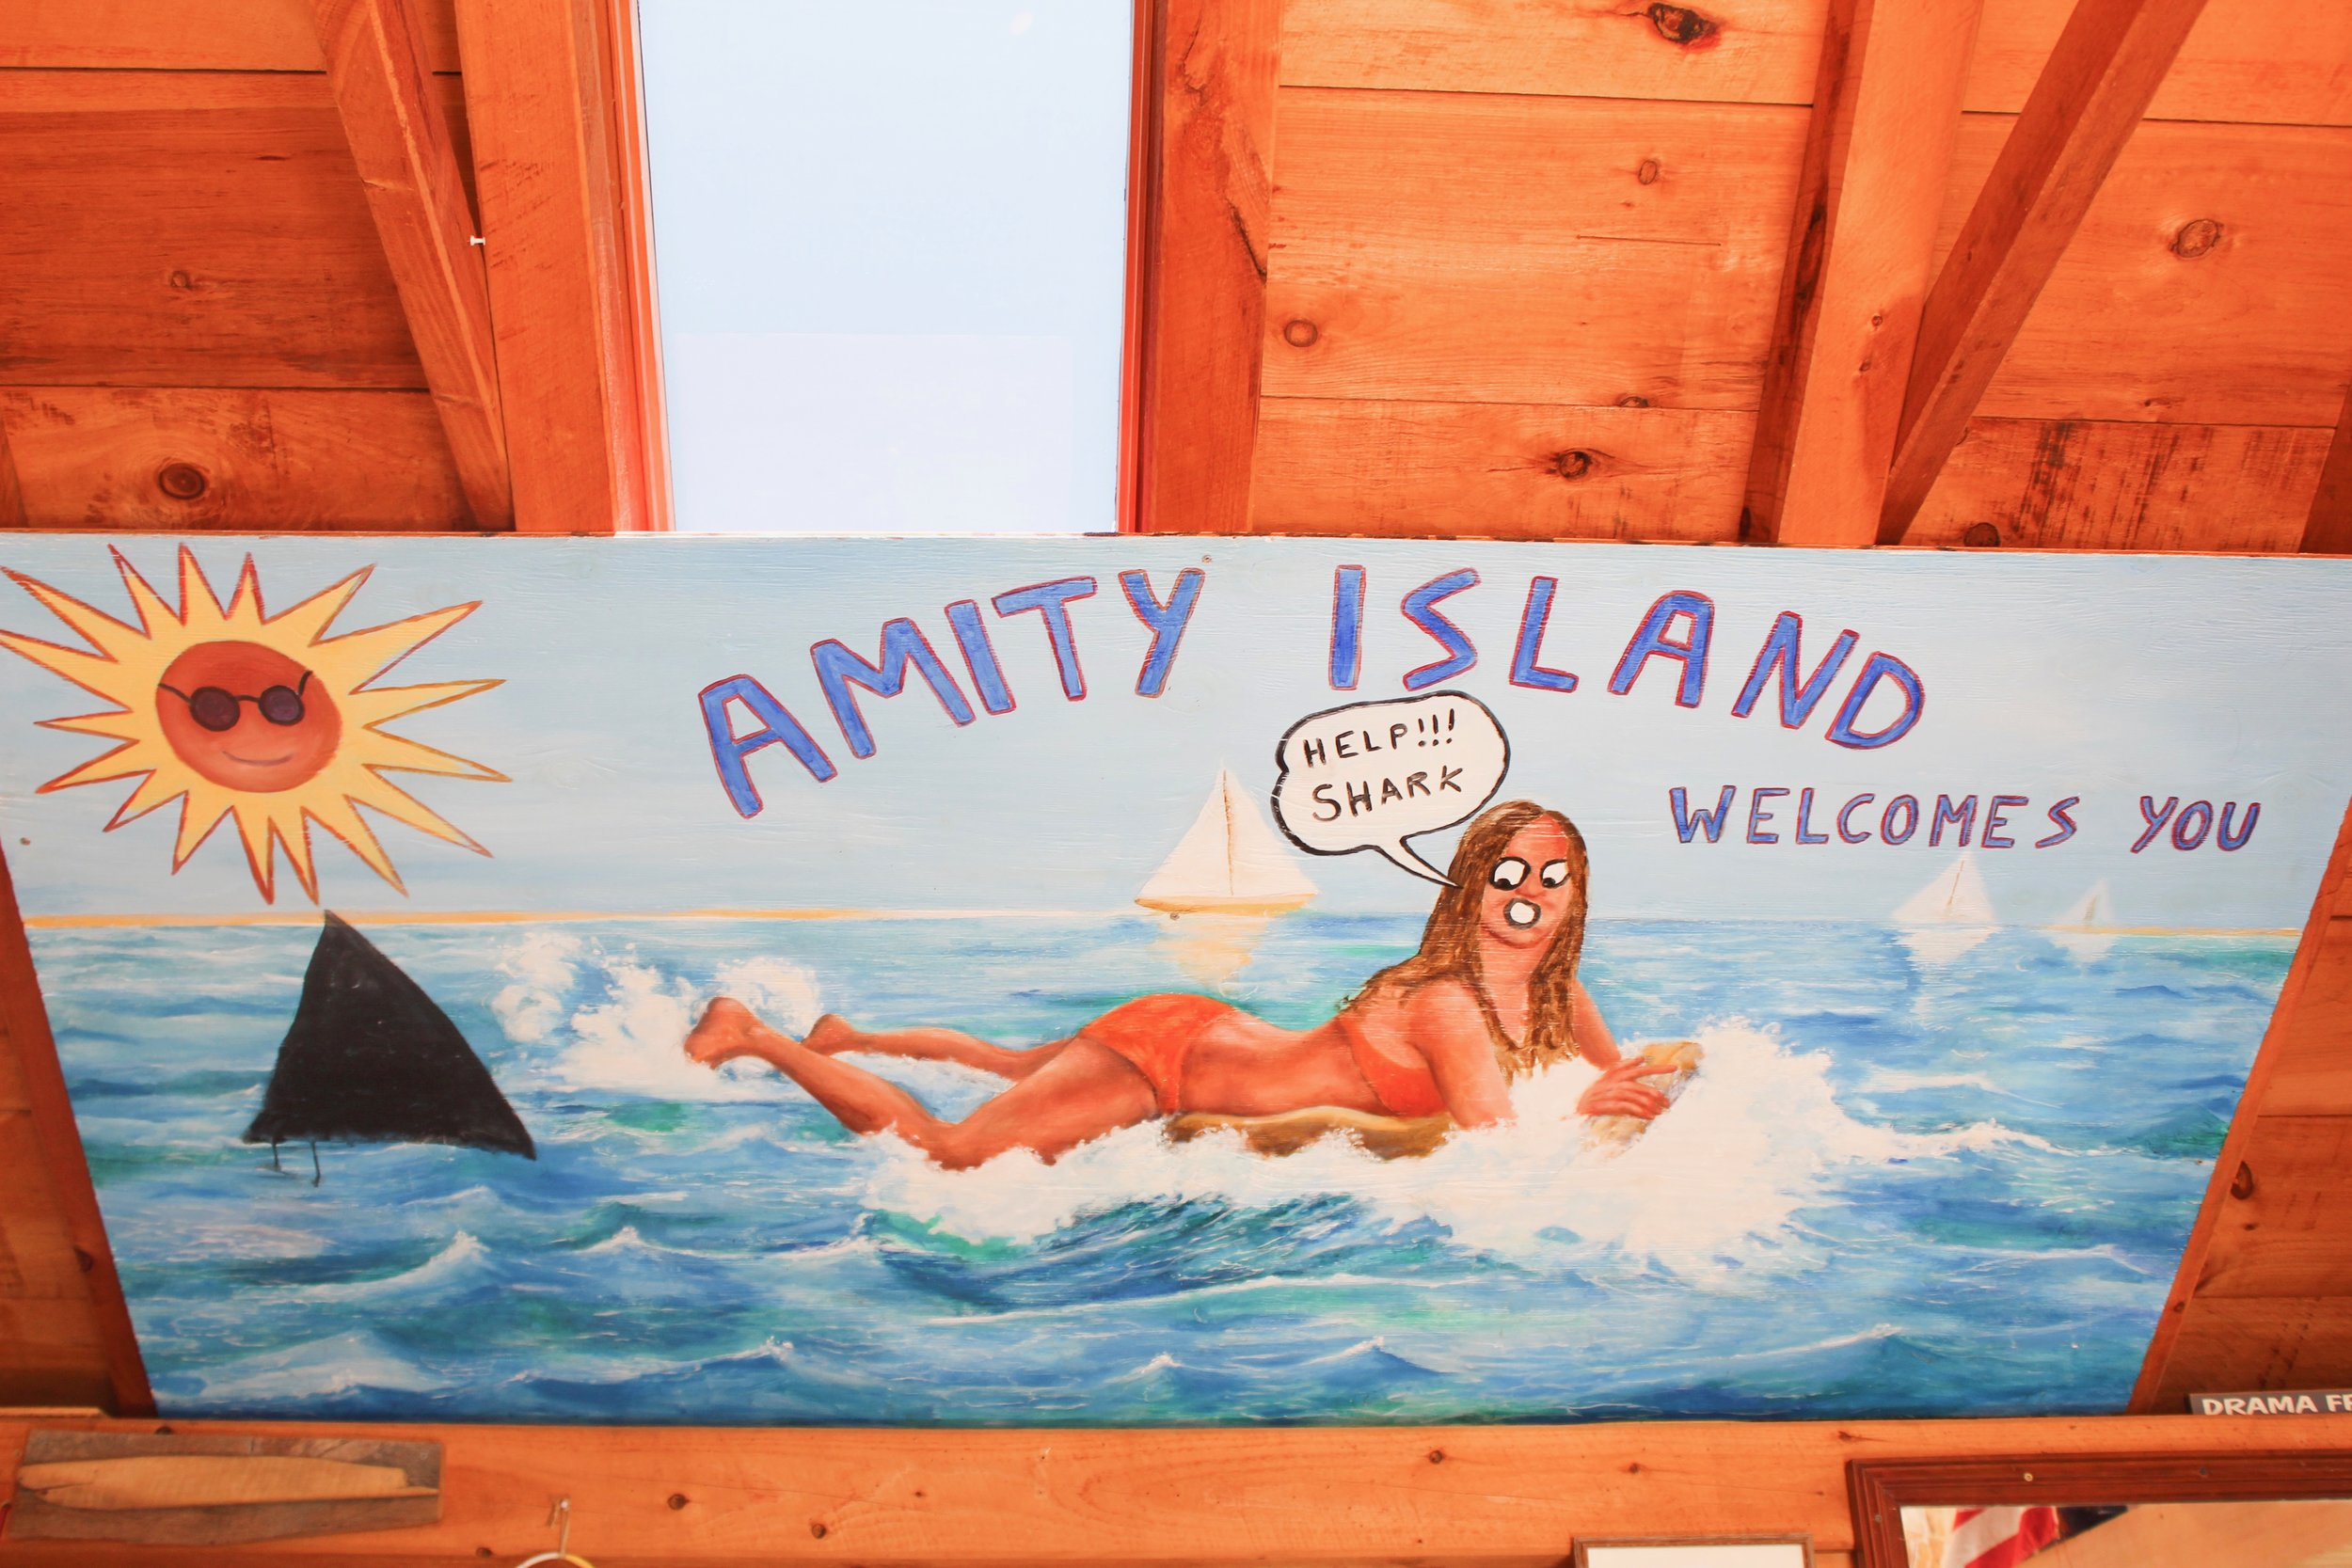 anyone recognize amity island?! hint: JAWS!!!